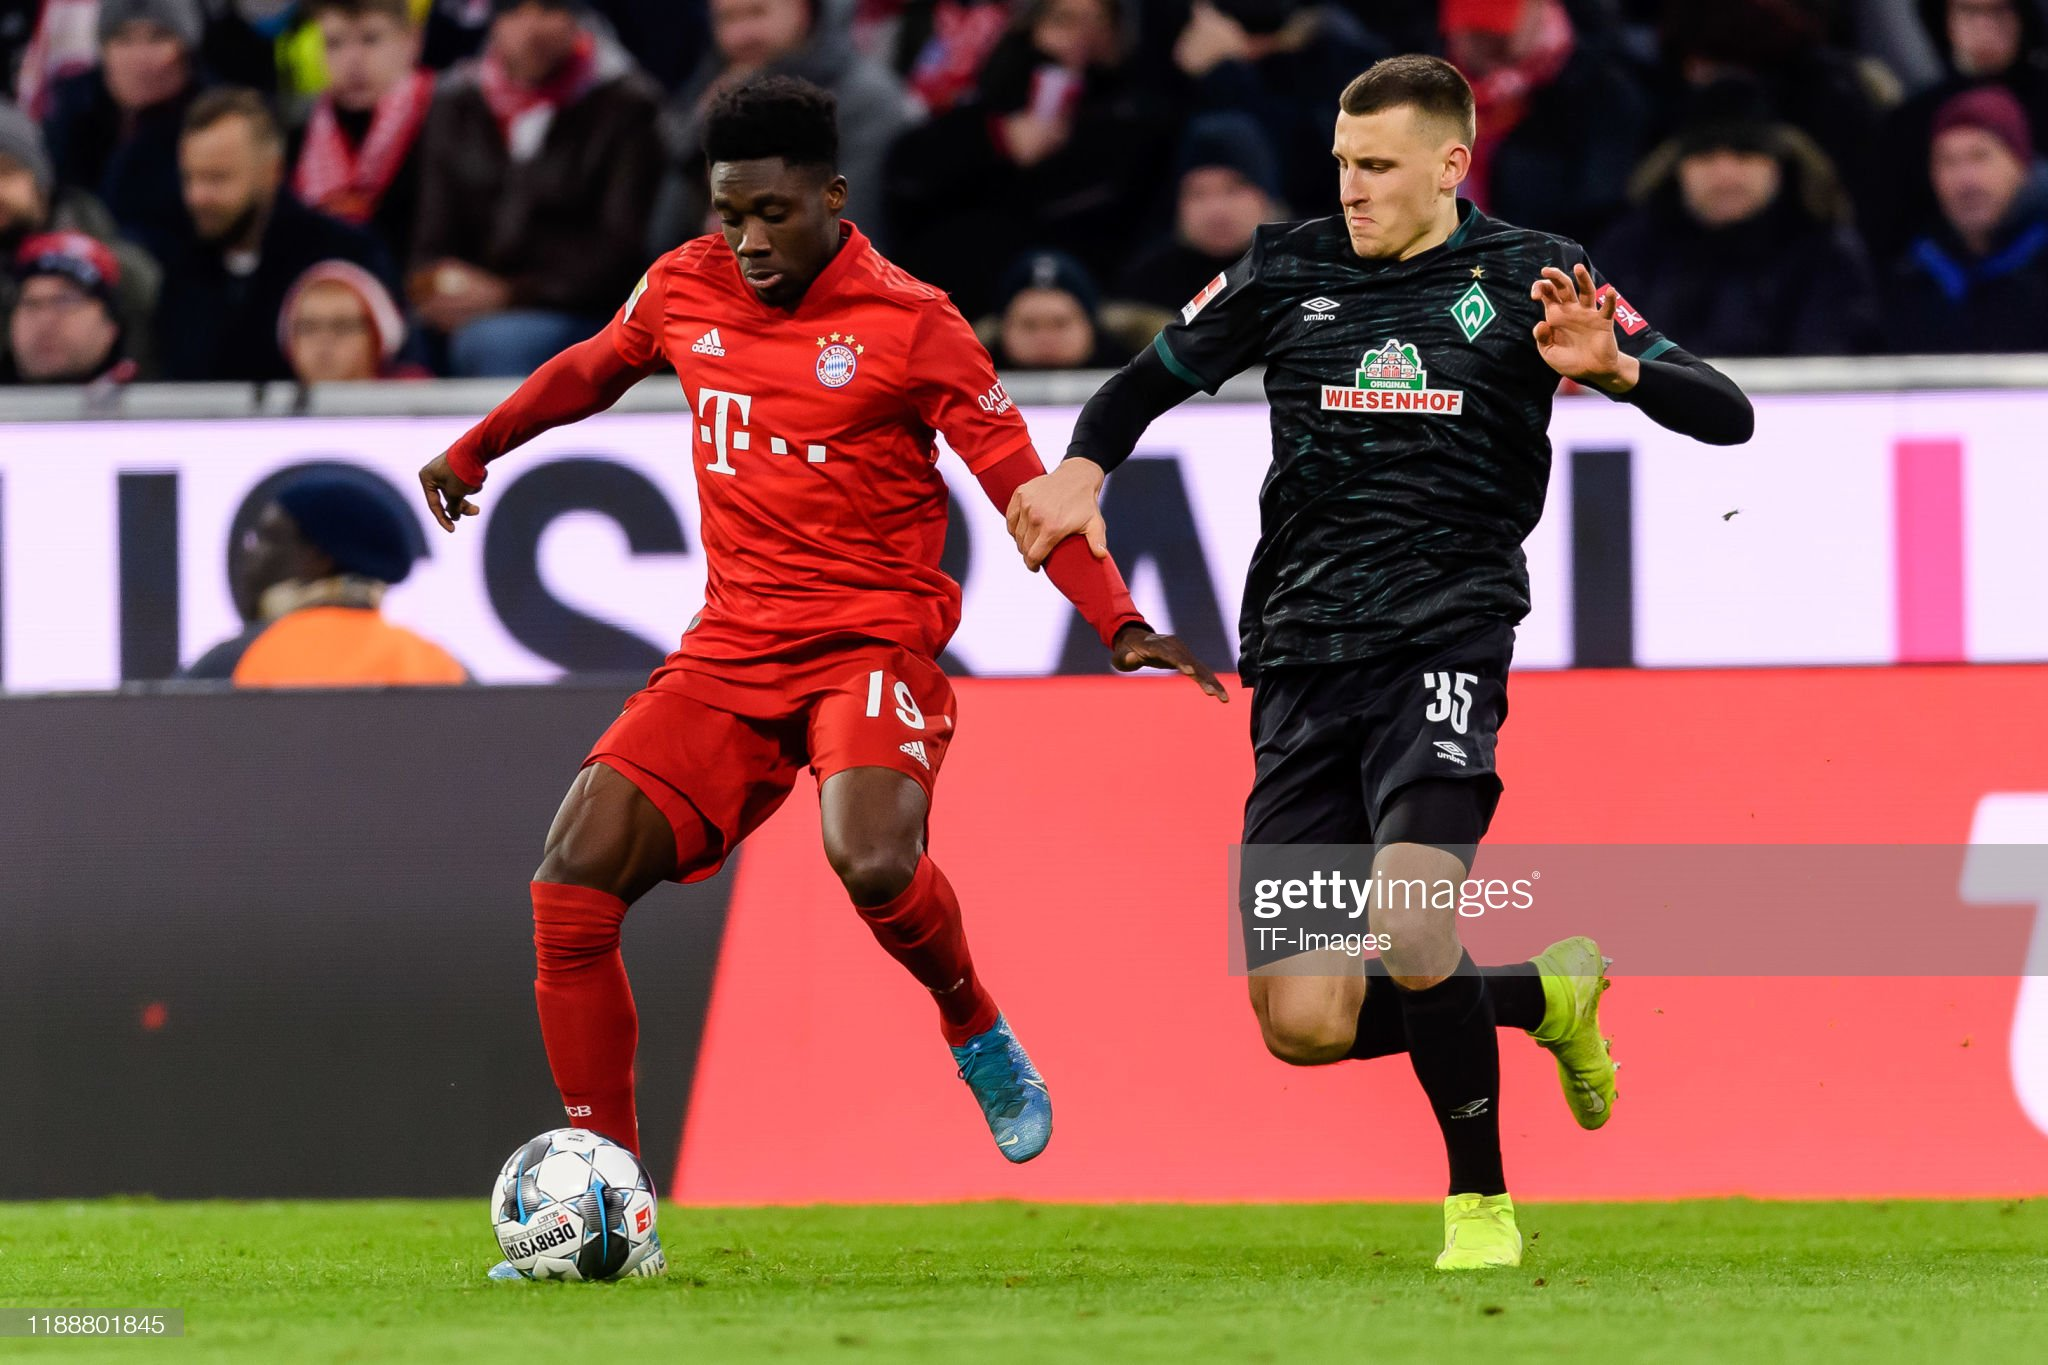 Werder Bremen vs Bayern Munich Preview, prediction and odds